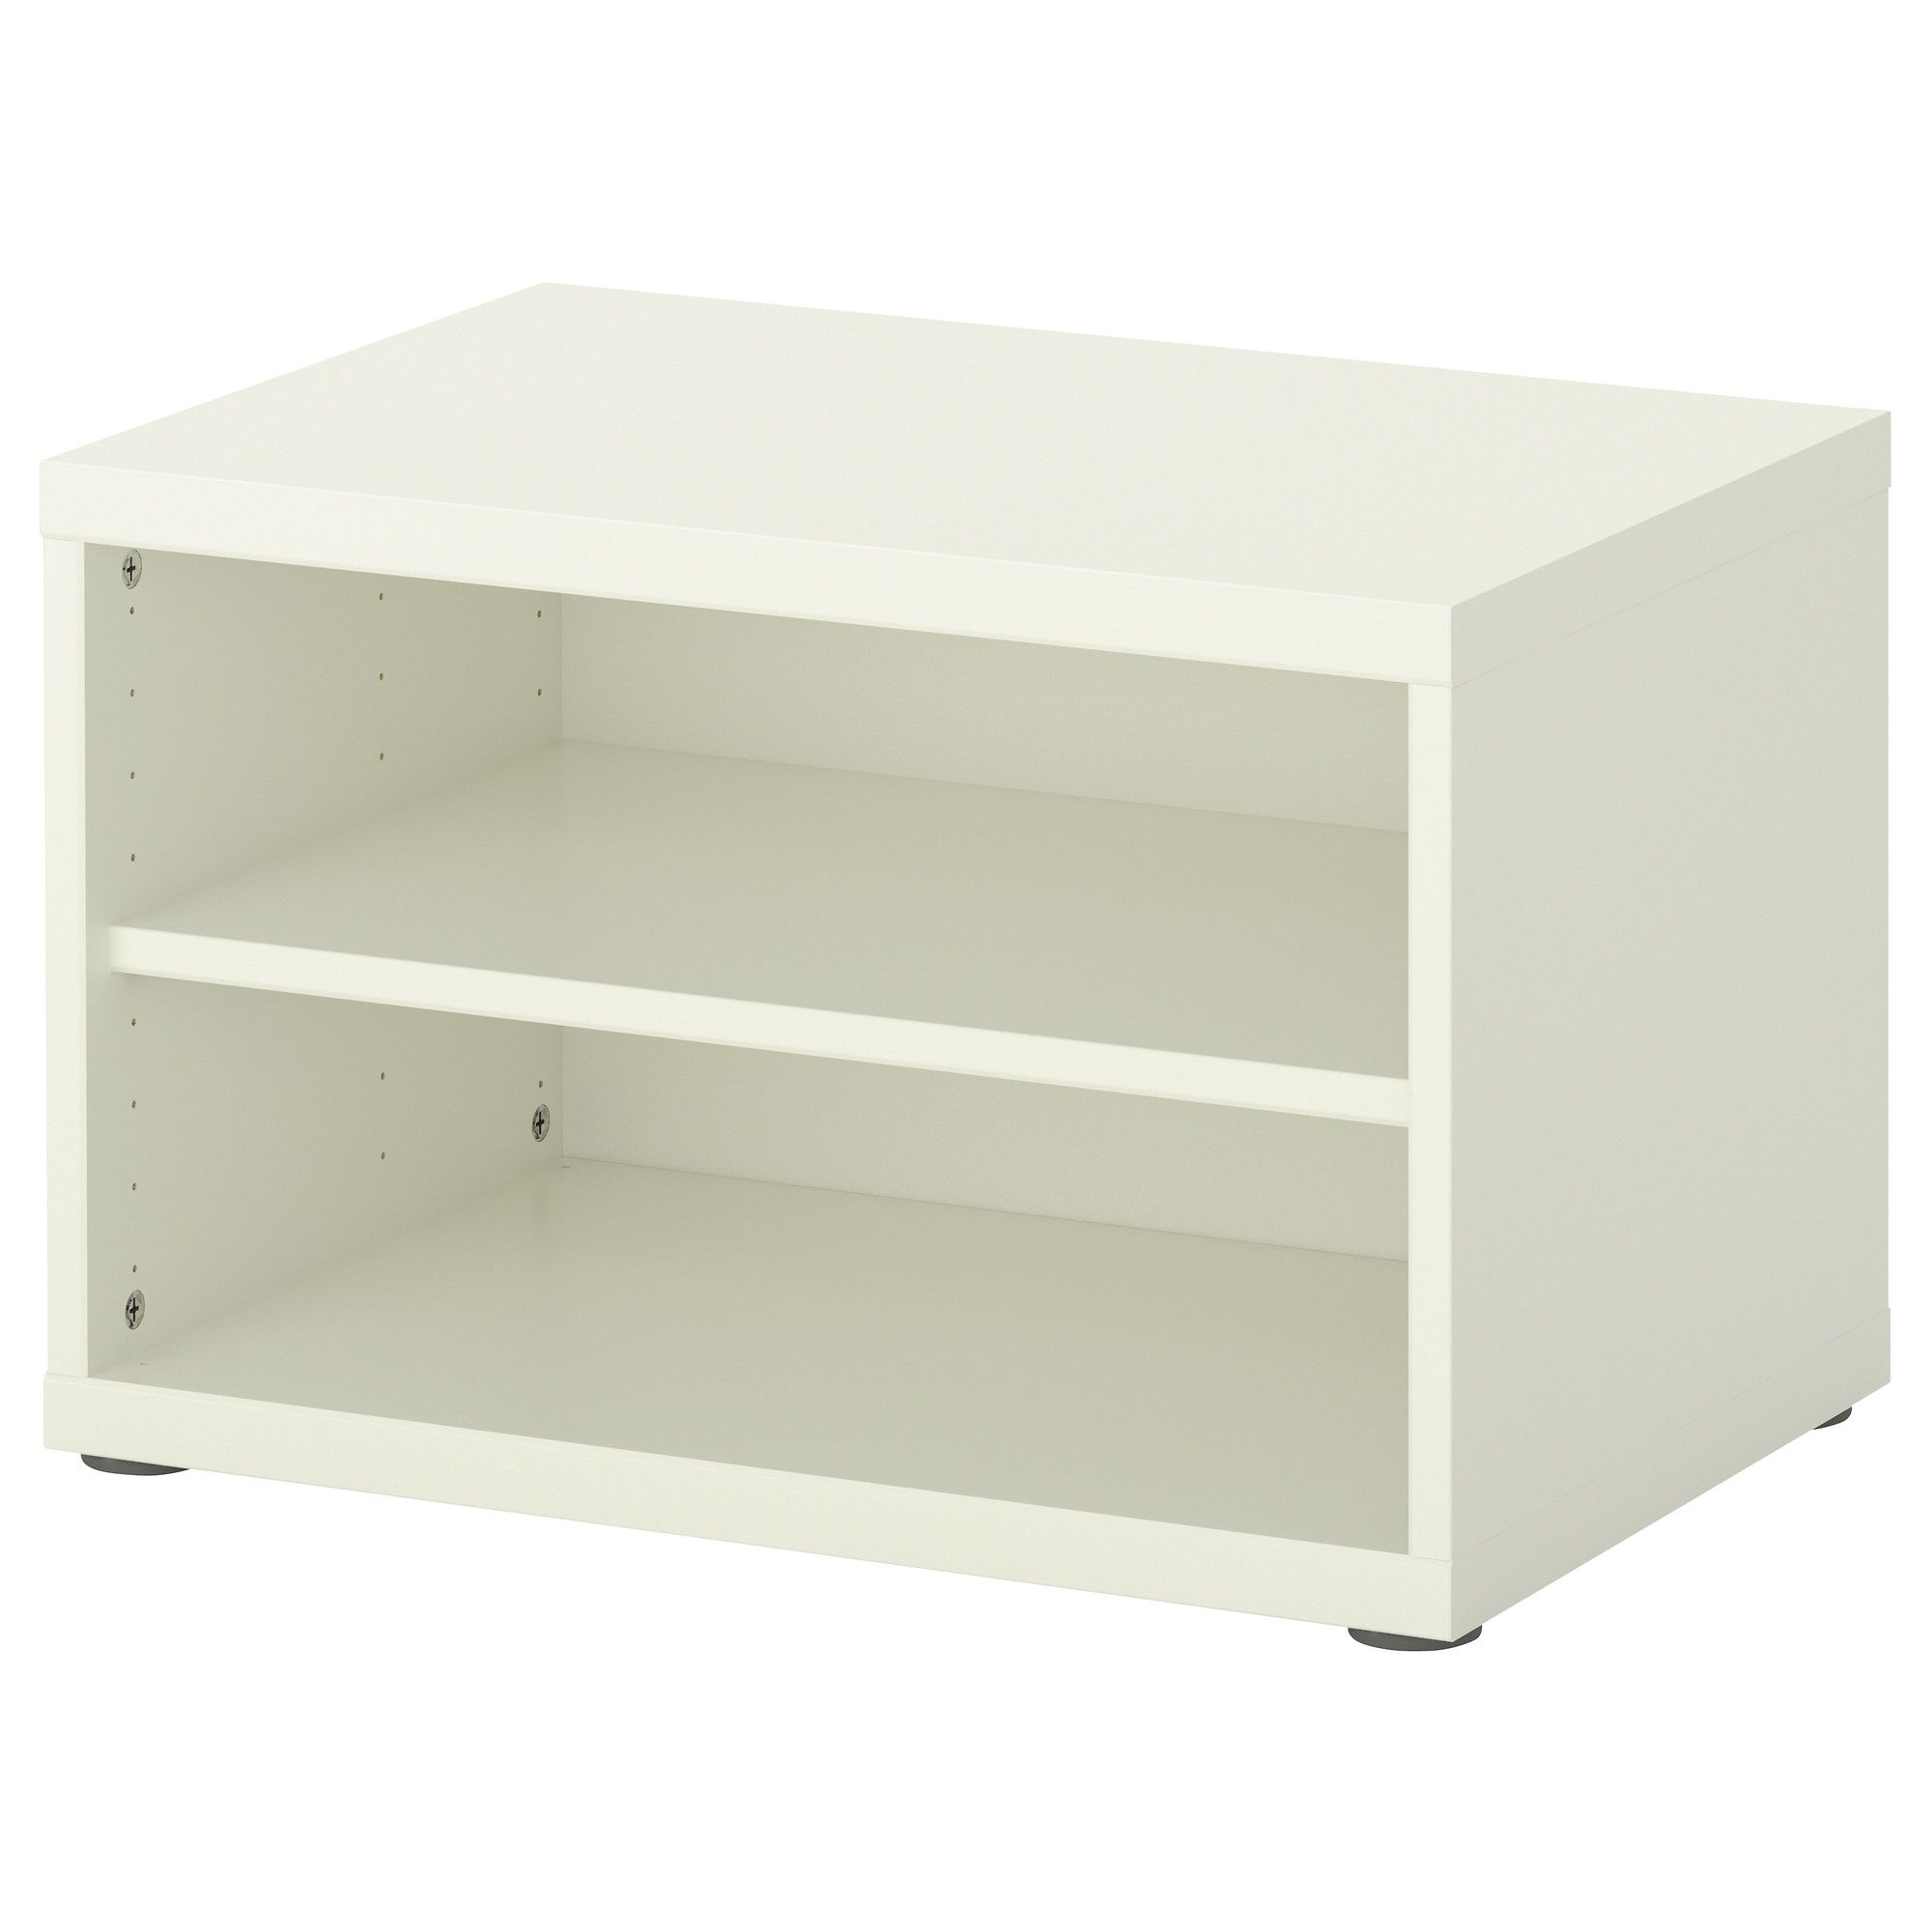 US Furniture and Home Furnishings Shelves, White wall